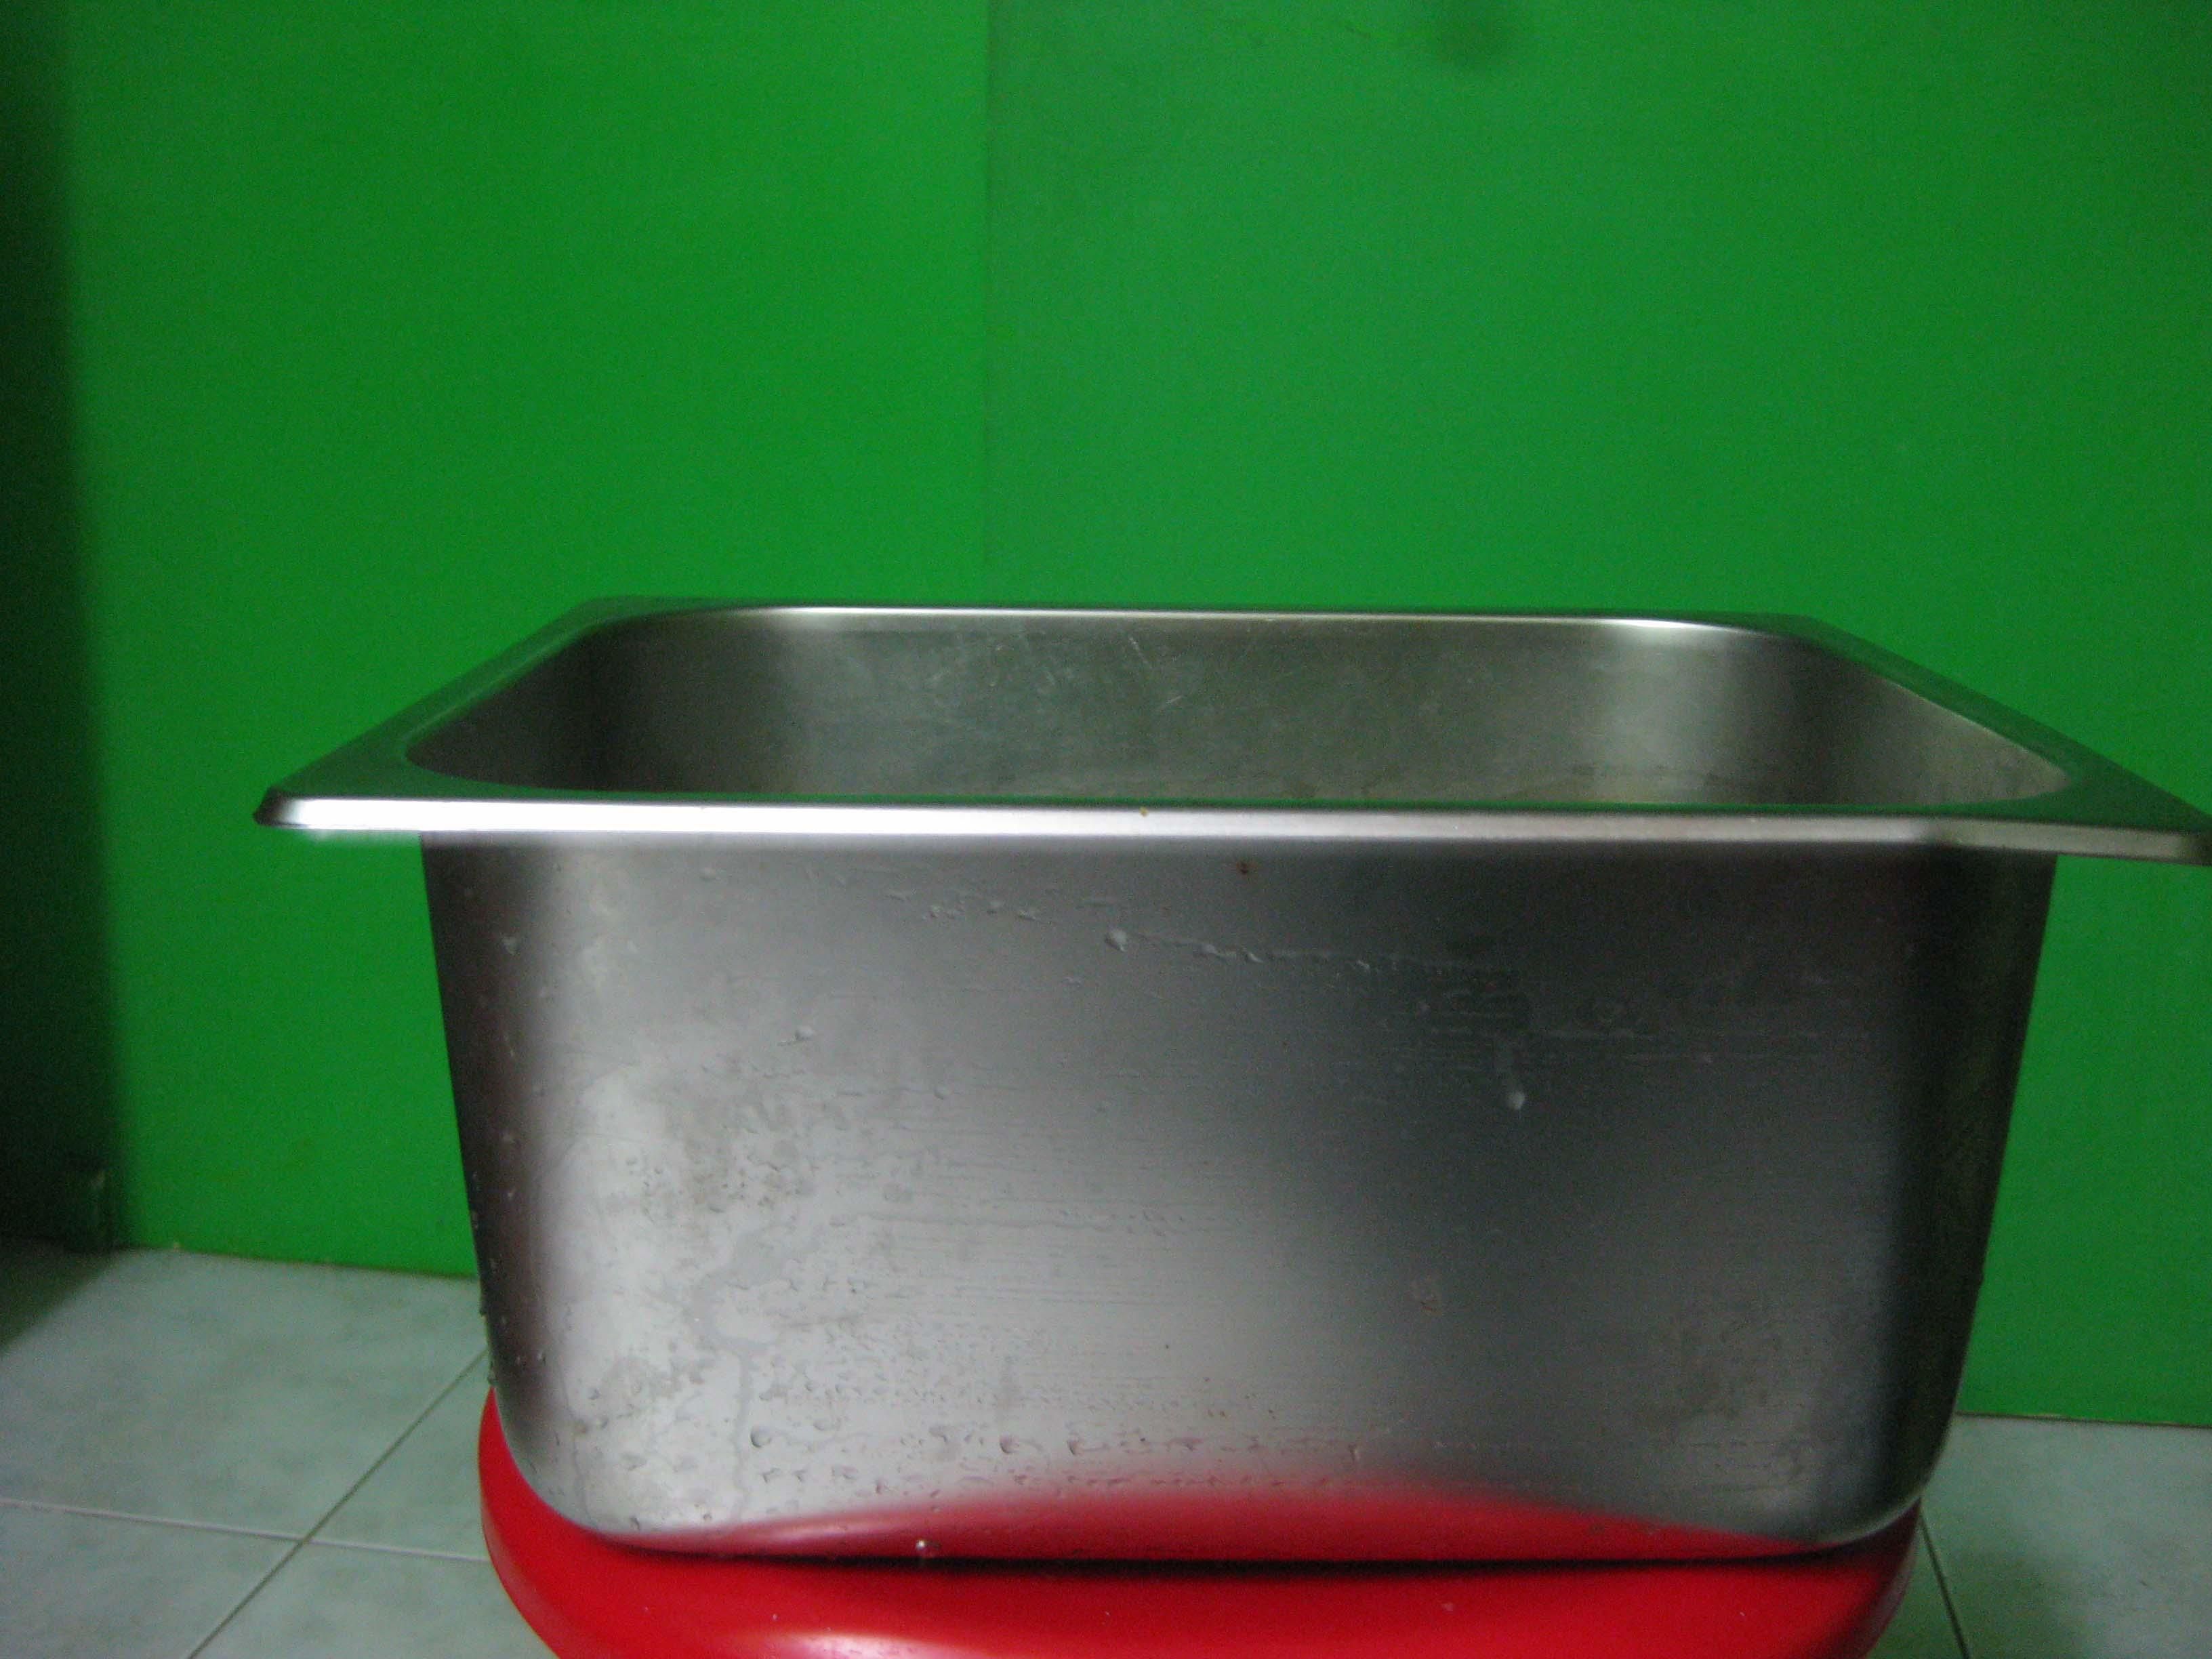 STAINLESS STEEL FOOD CONTAINER Quezon - Philippines Buy and Sell Marketplace - PinoyDeal